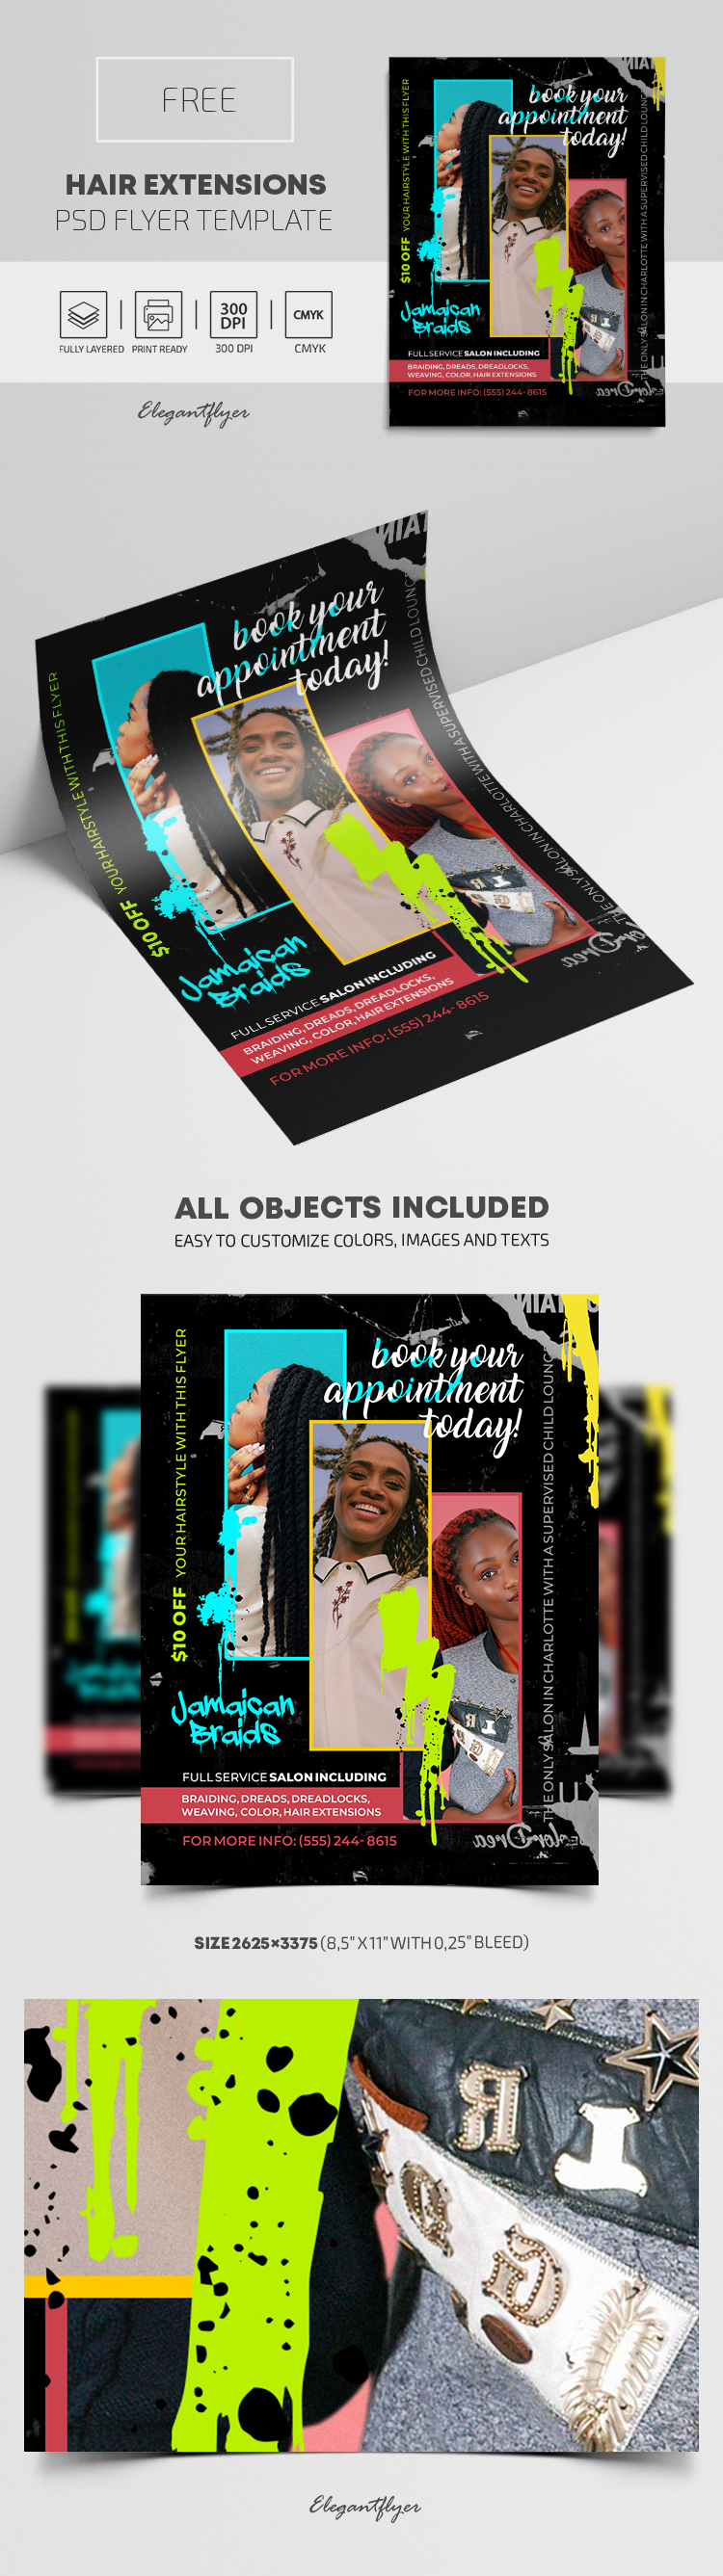 Hair Extensions – Free PSD Flyer Template